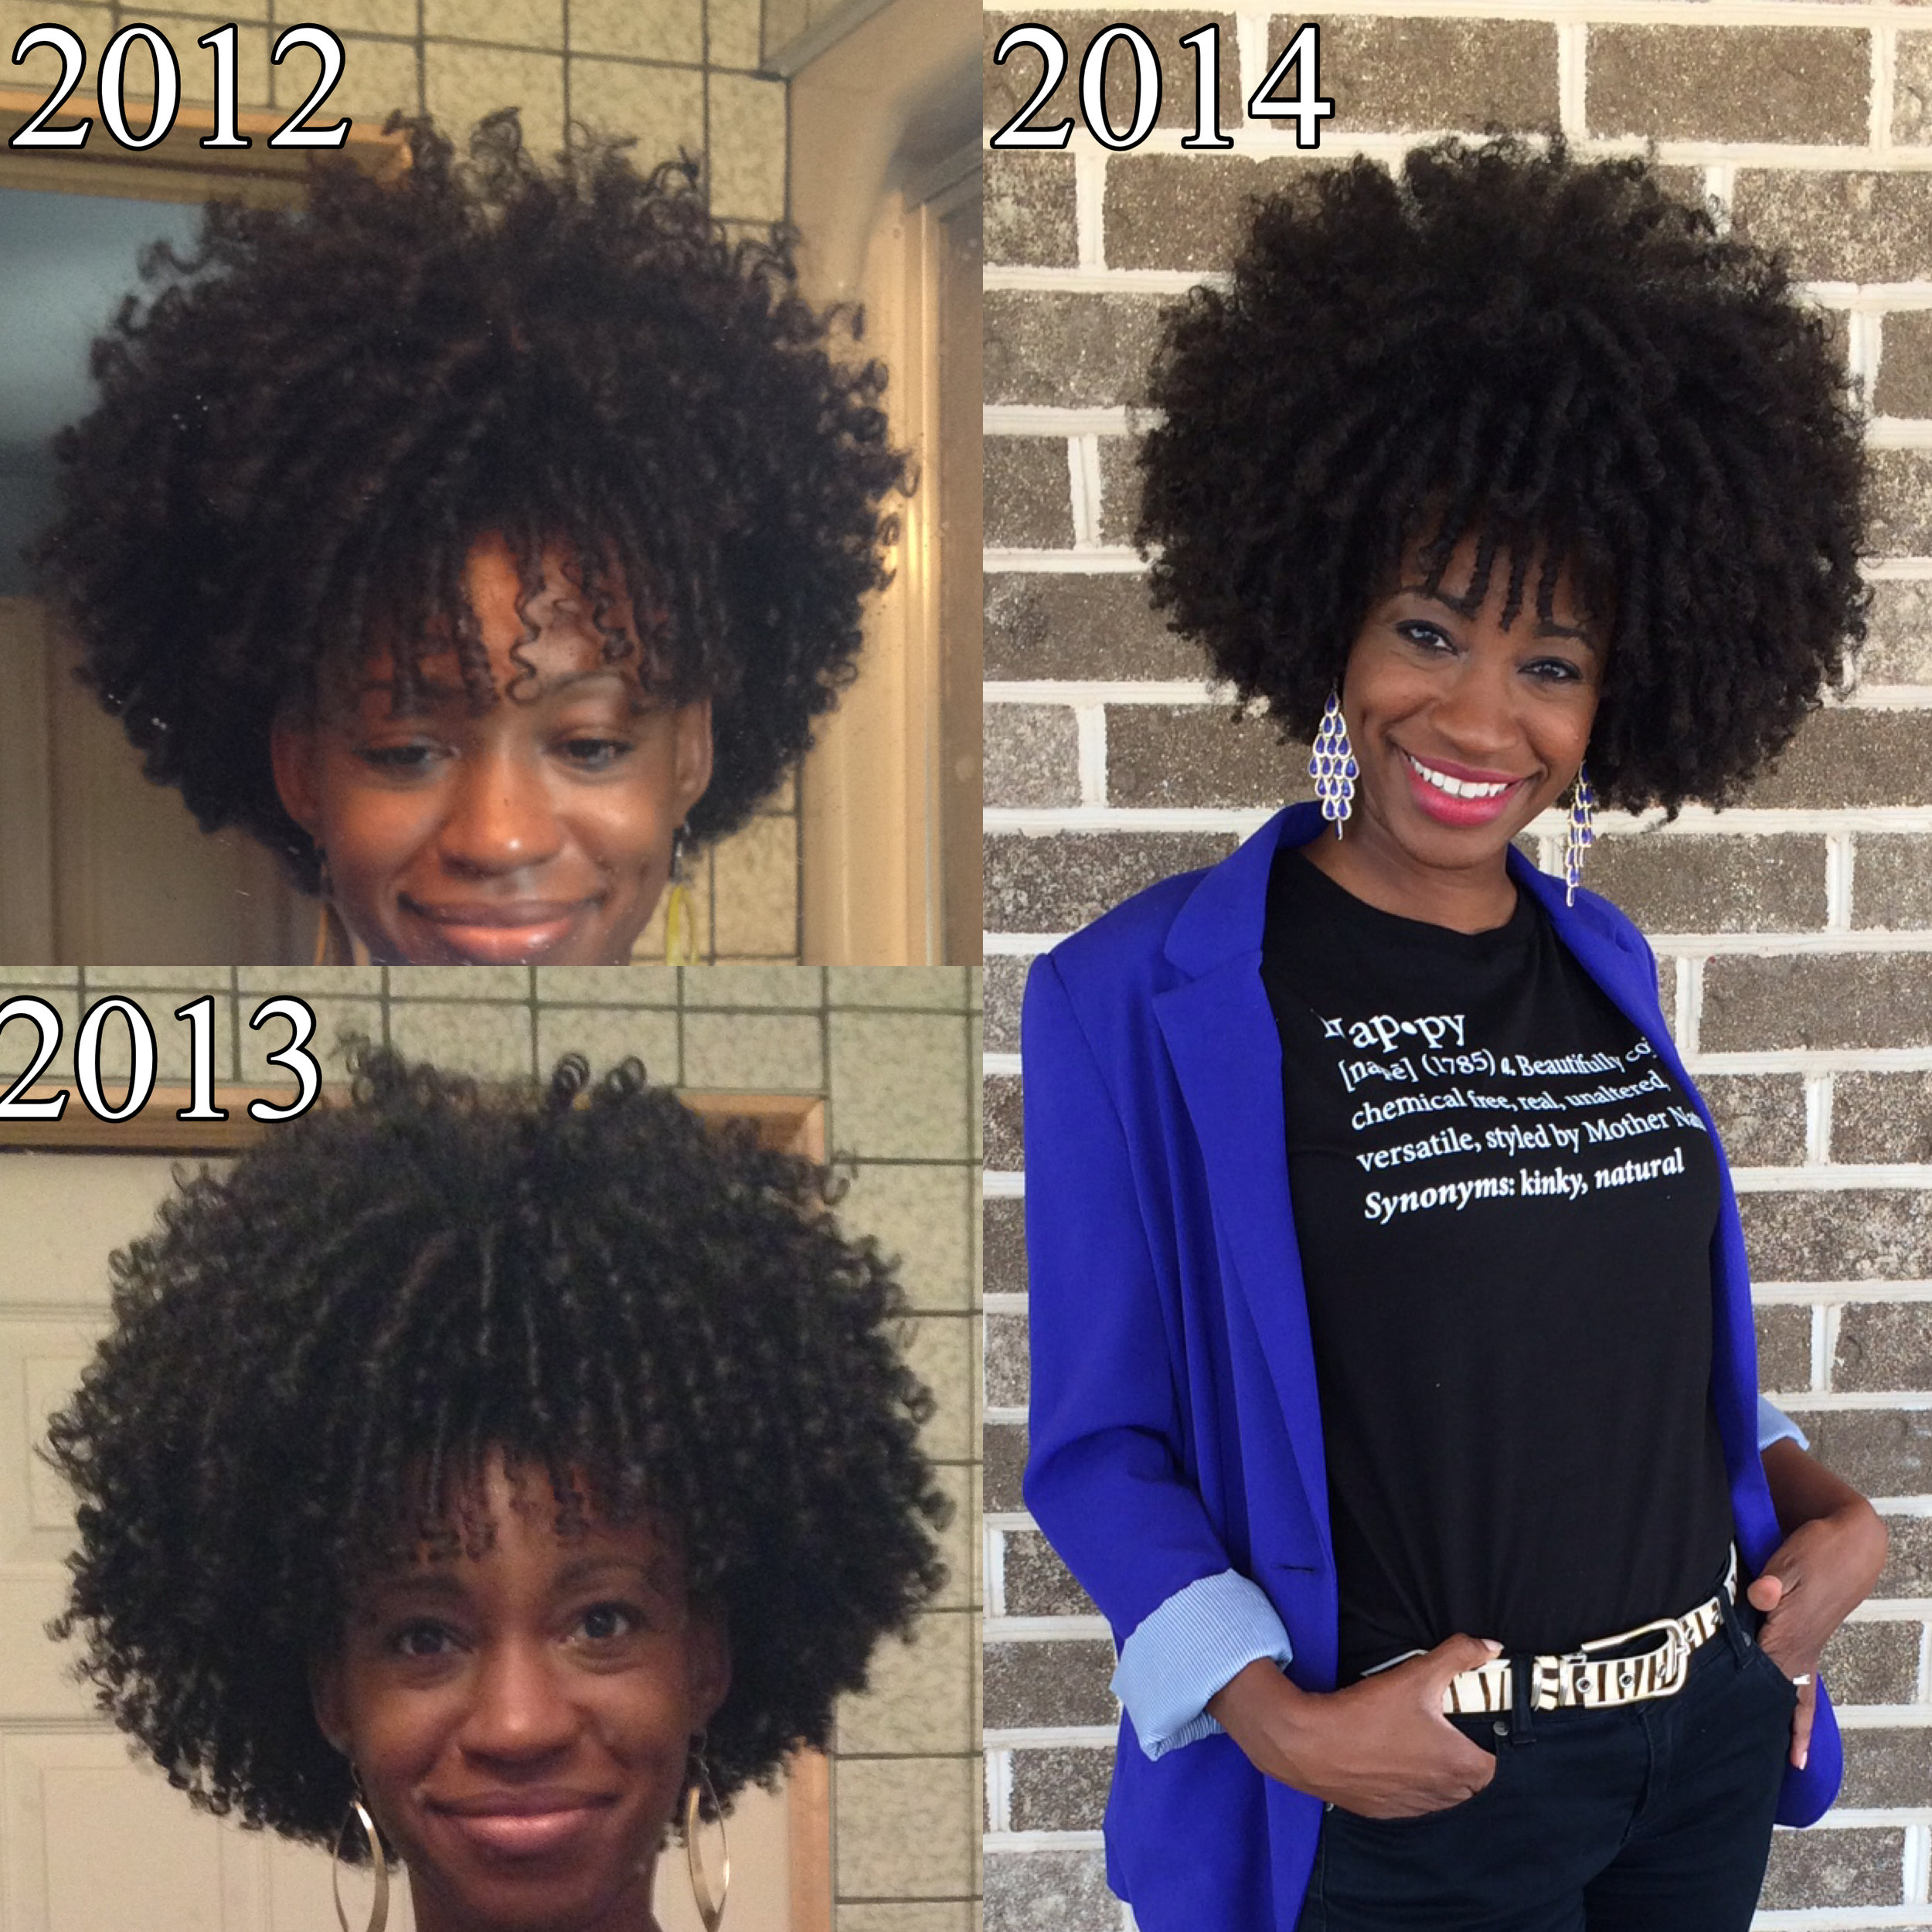 It took me several years to get hair satisfaction.  Patience, persistence and good hair care are vital!